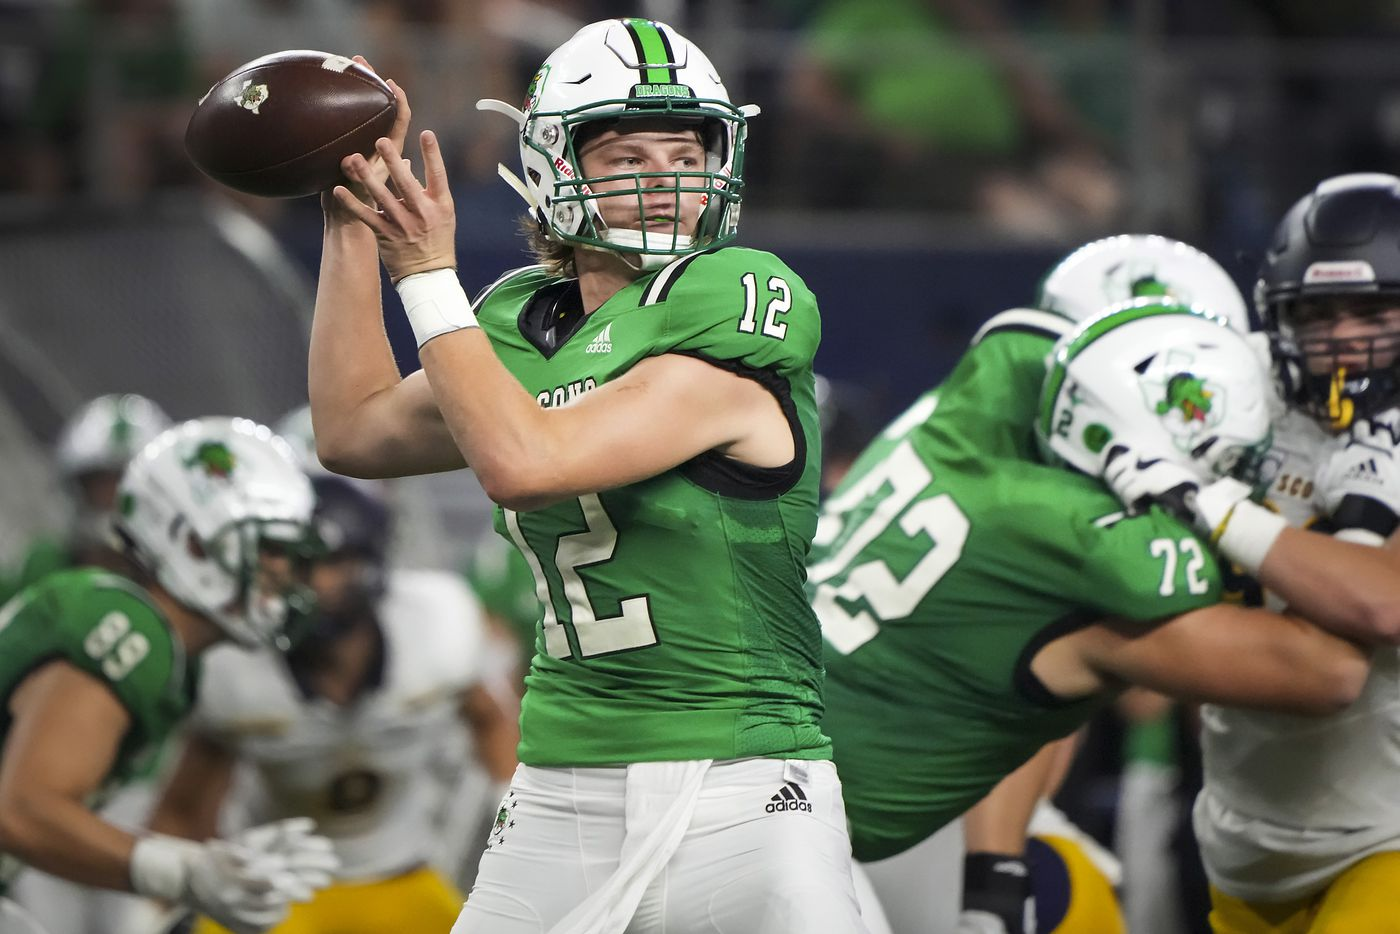 Southlake Carroll quarterback Kaden Anderson (12) throws a pass during the first half of a high school football game against Highland Park at AT&T Stadium on Thursday, Aug. 26, 2021, in Arlington.